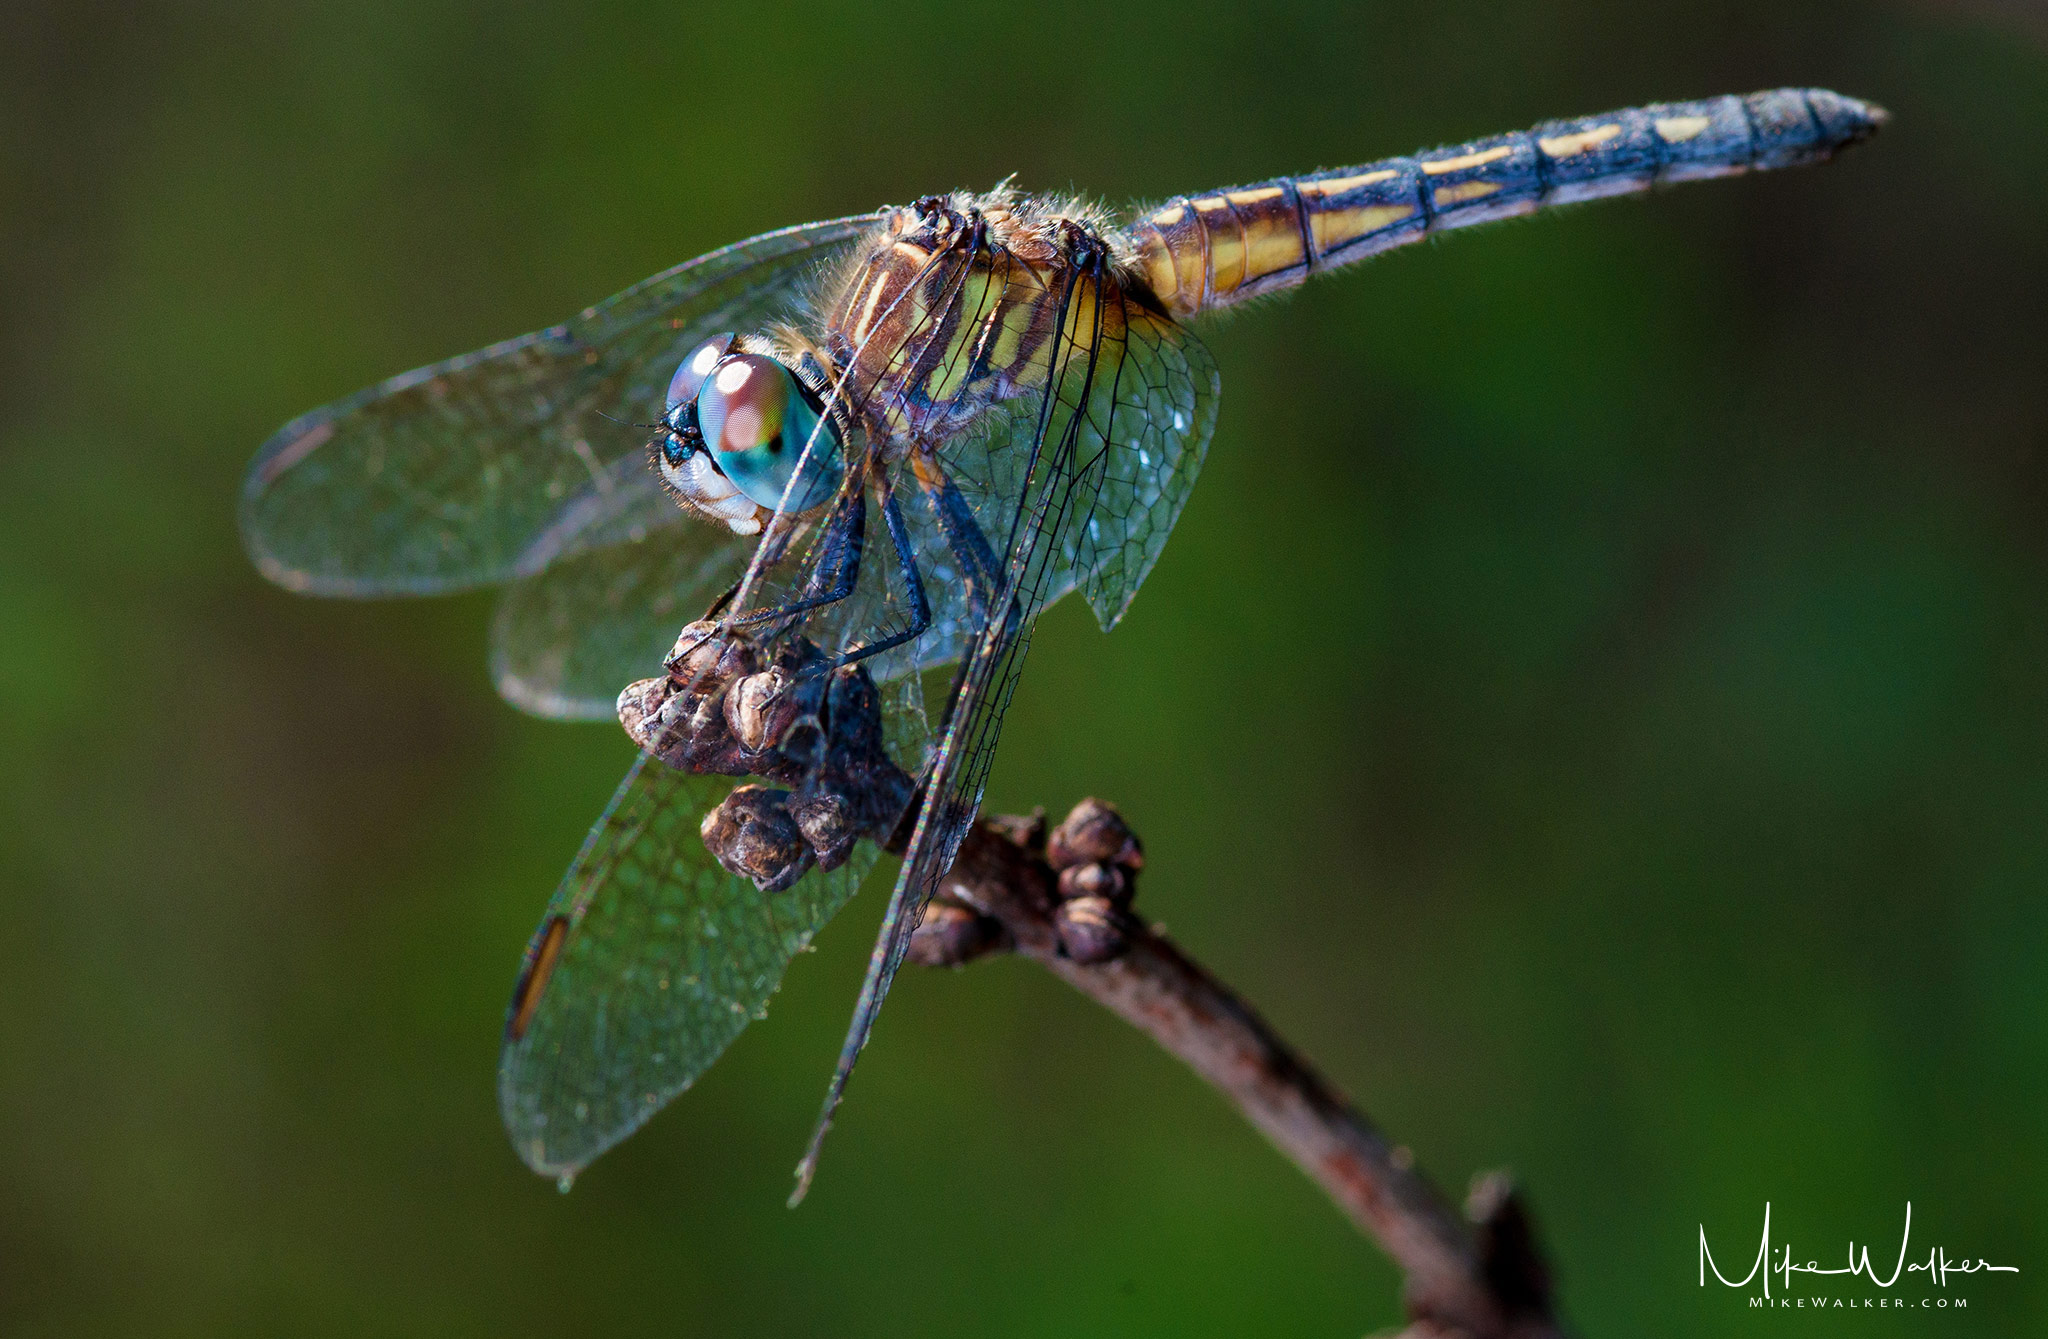 Closeup of a dragonfly on a branch. Nature photography by Mike Walker.